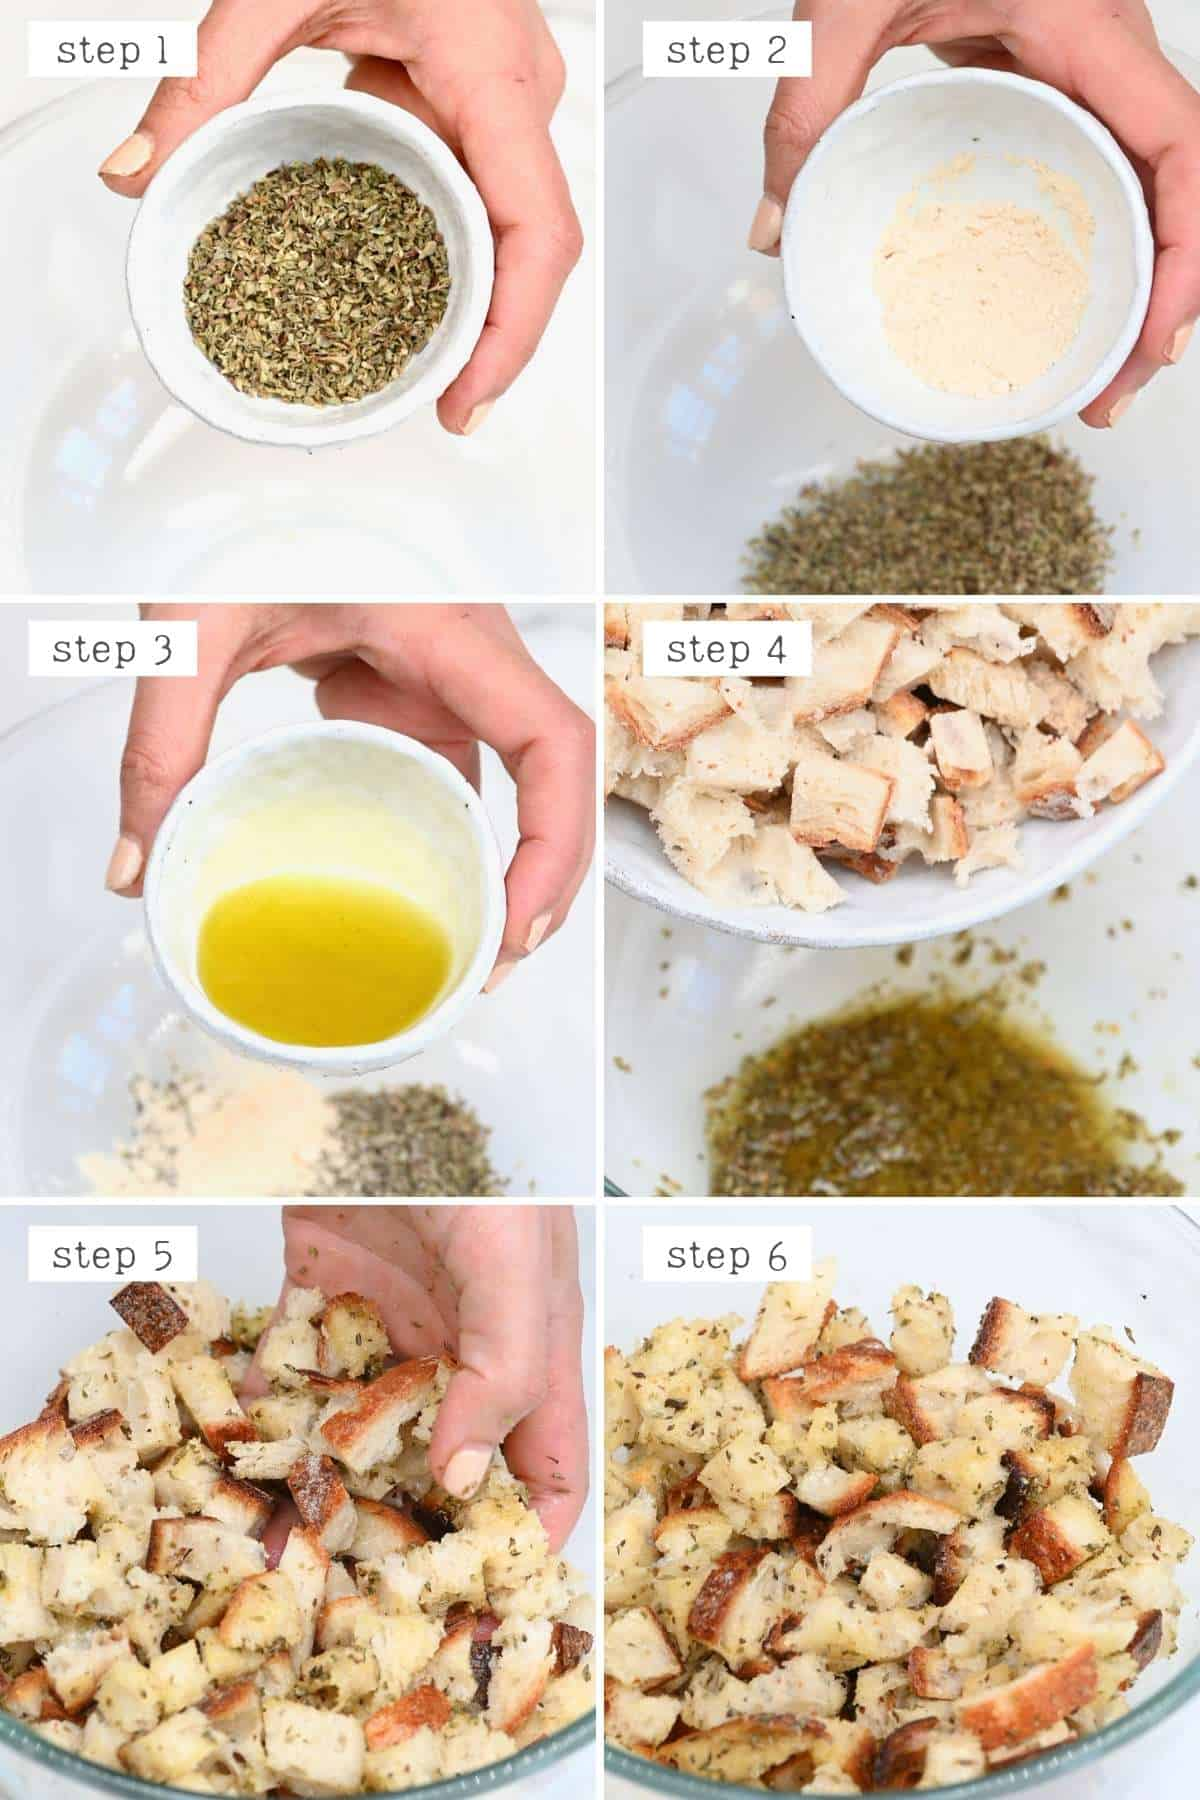 Steps for coating croutons with spices